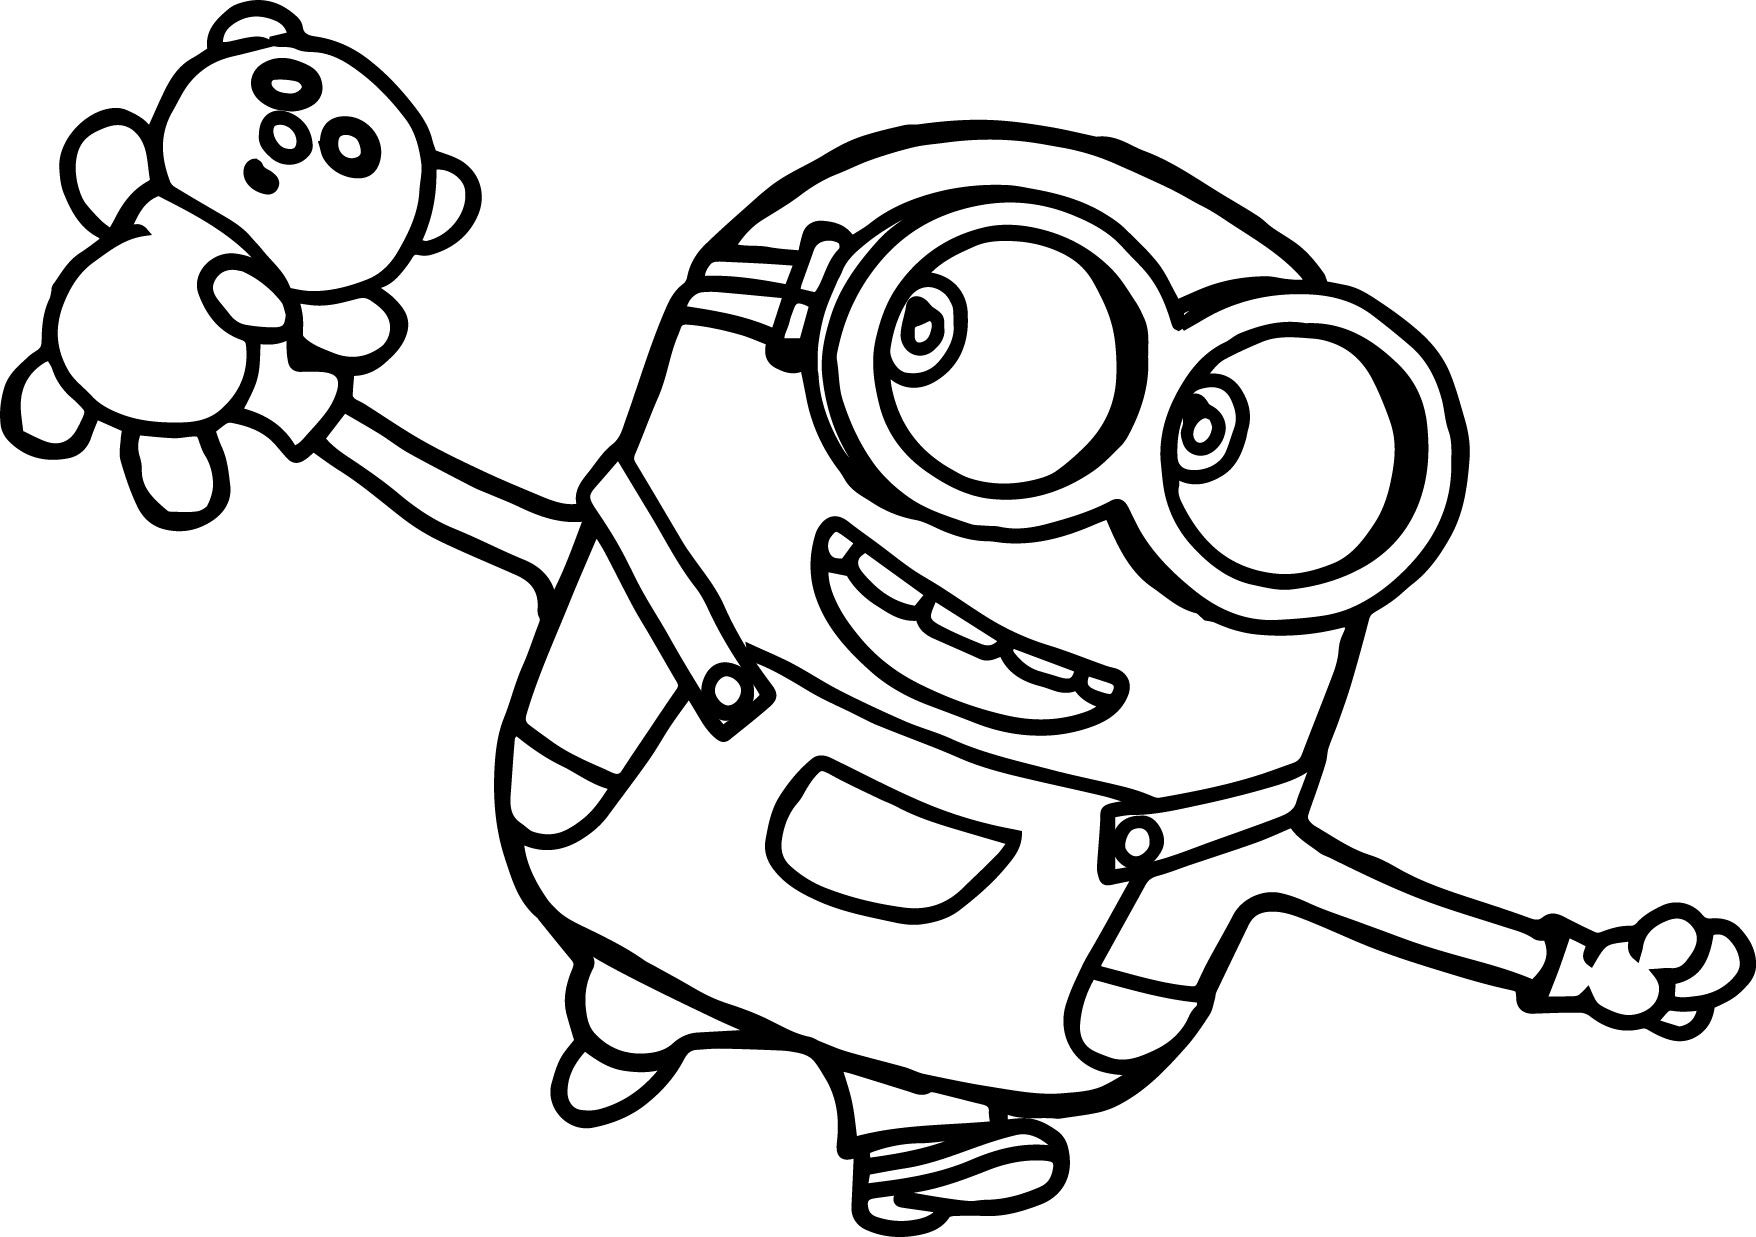 Minion Coloring Pages Bob  Download 2q - Save it to your computer